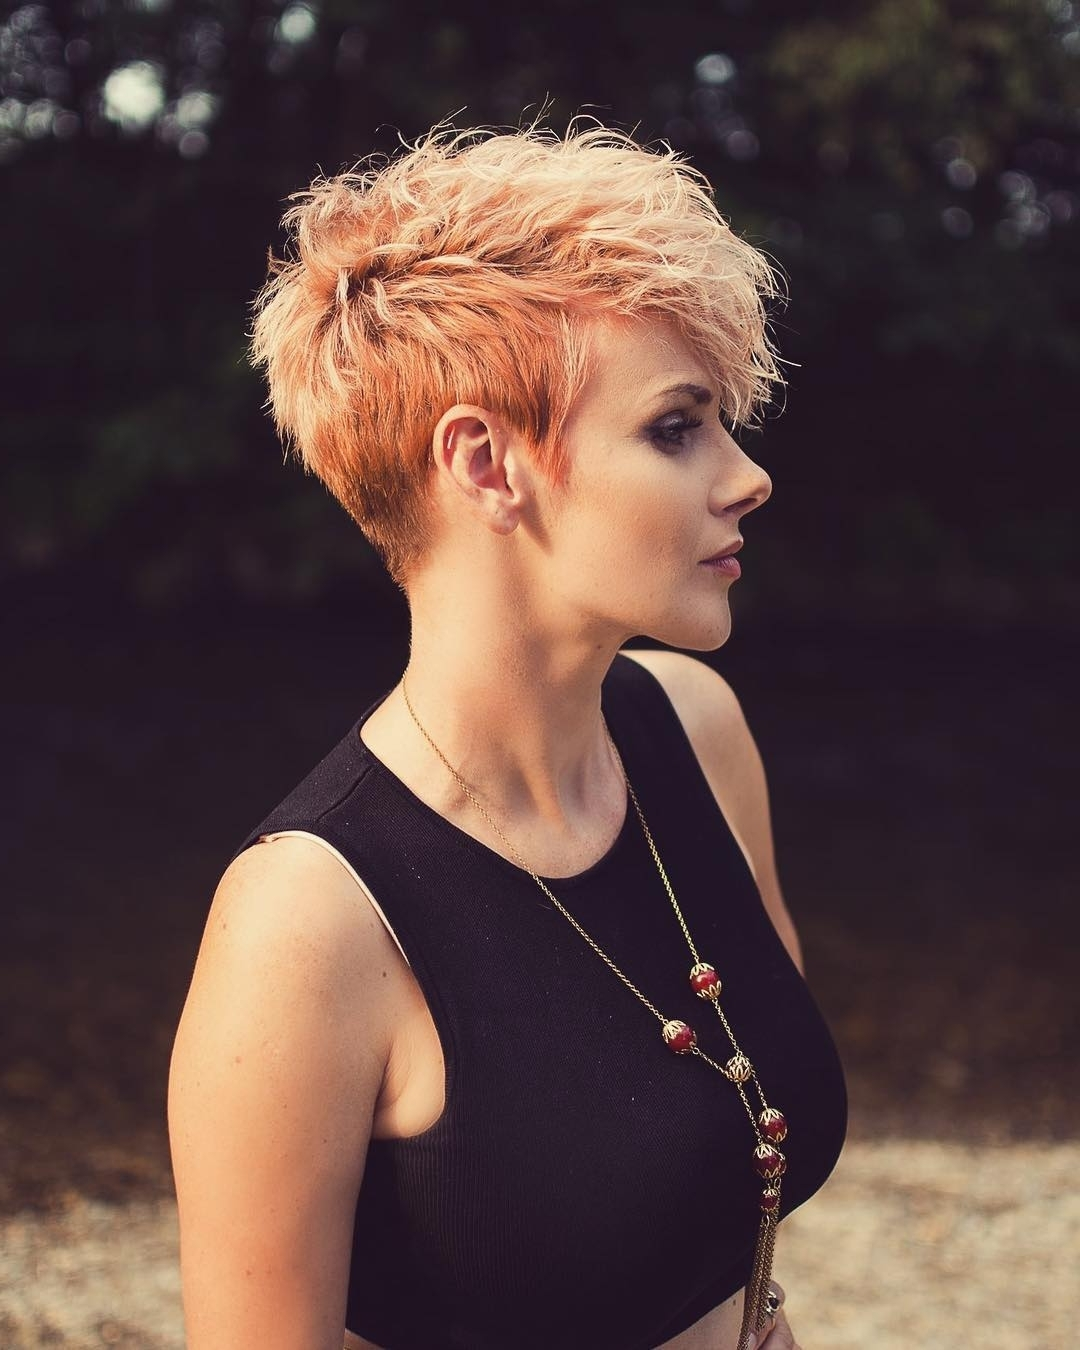 Most Current Two Tone Pixie Hairstyles Within 10 Peppy Pixie Cuts – Boy Cuts & Girlie Cuts To Inspire, 2018 Short (View 13 of 20)